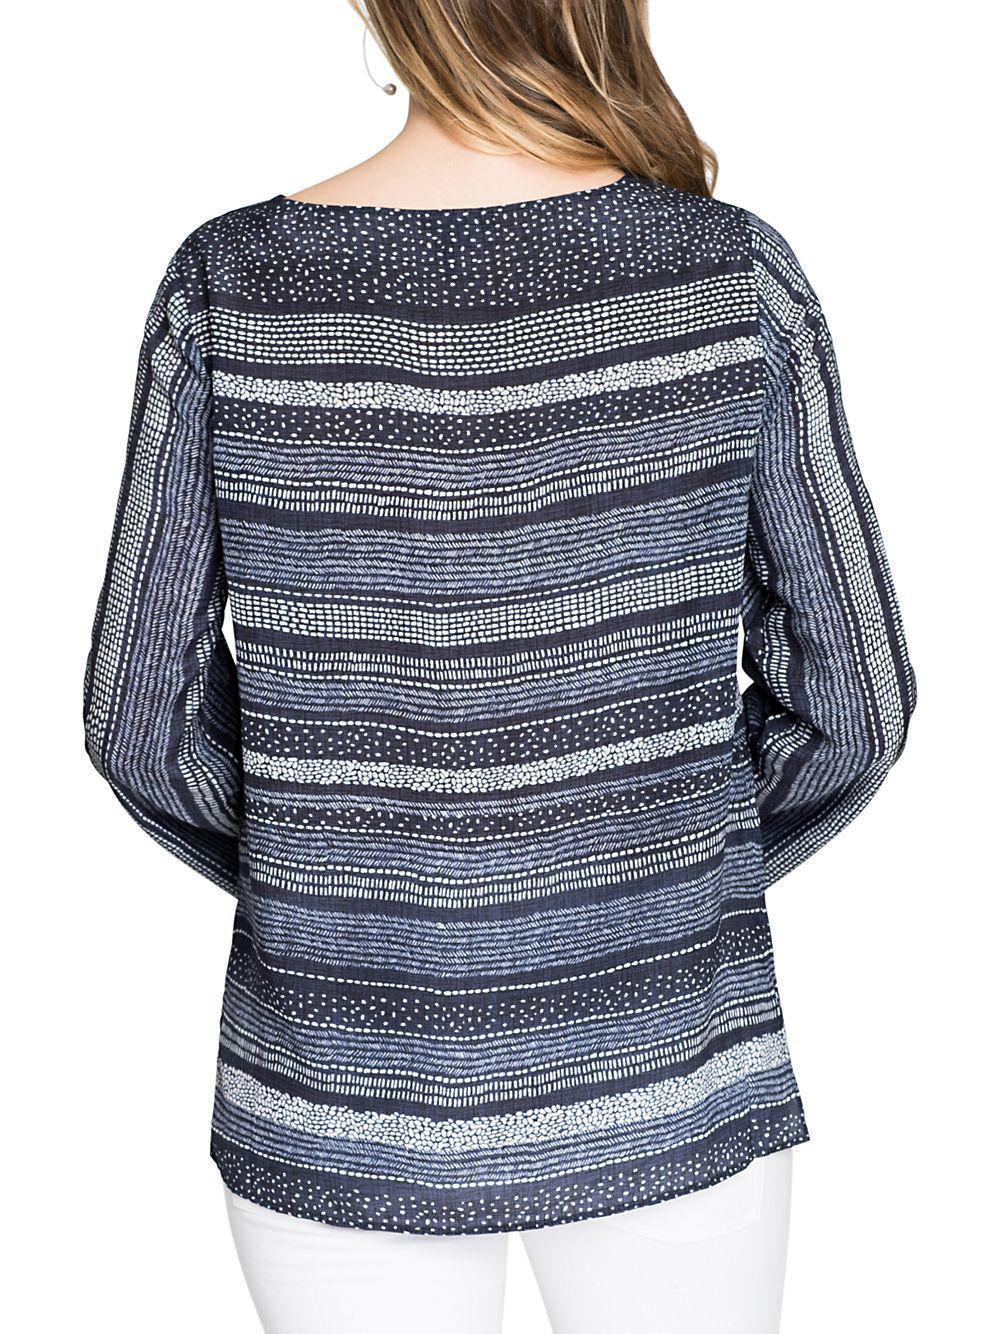 0cecf8d66c7 Lyst - Nic+Zoe Dotted Line Top in Blue